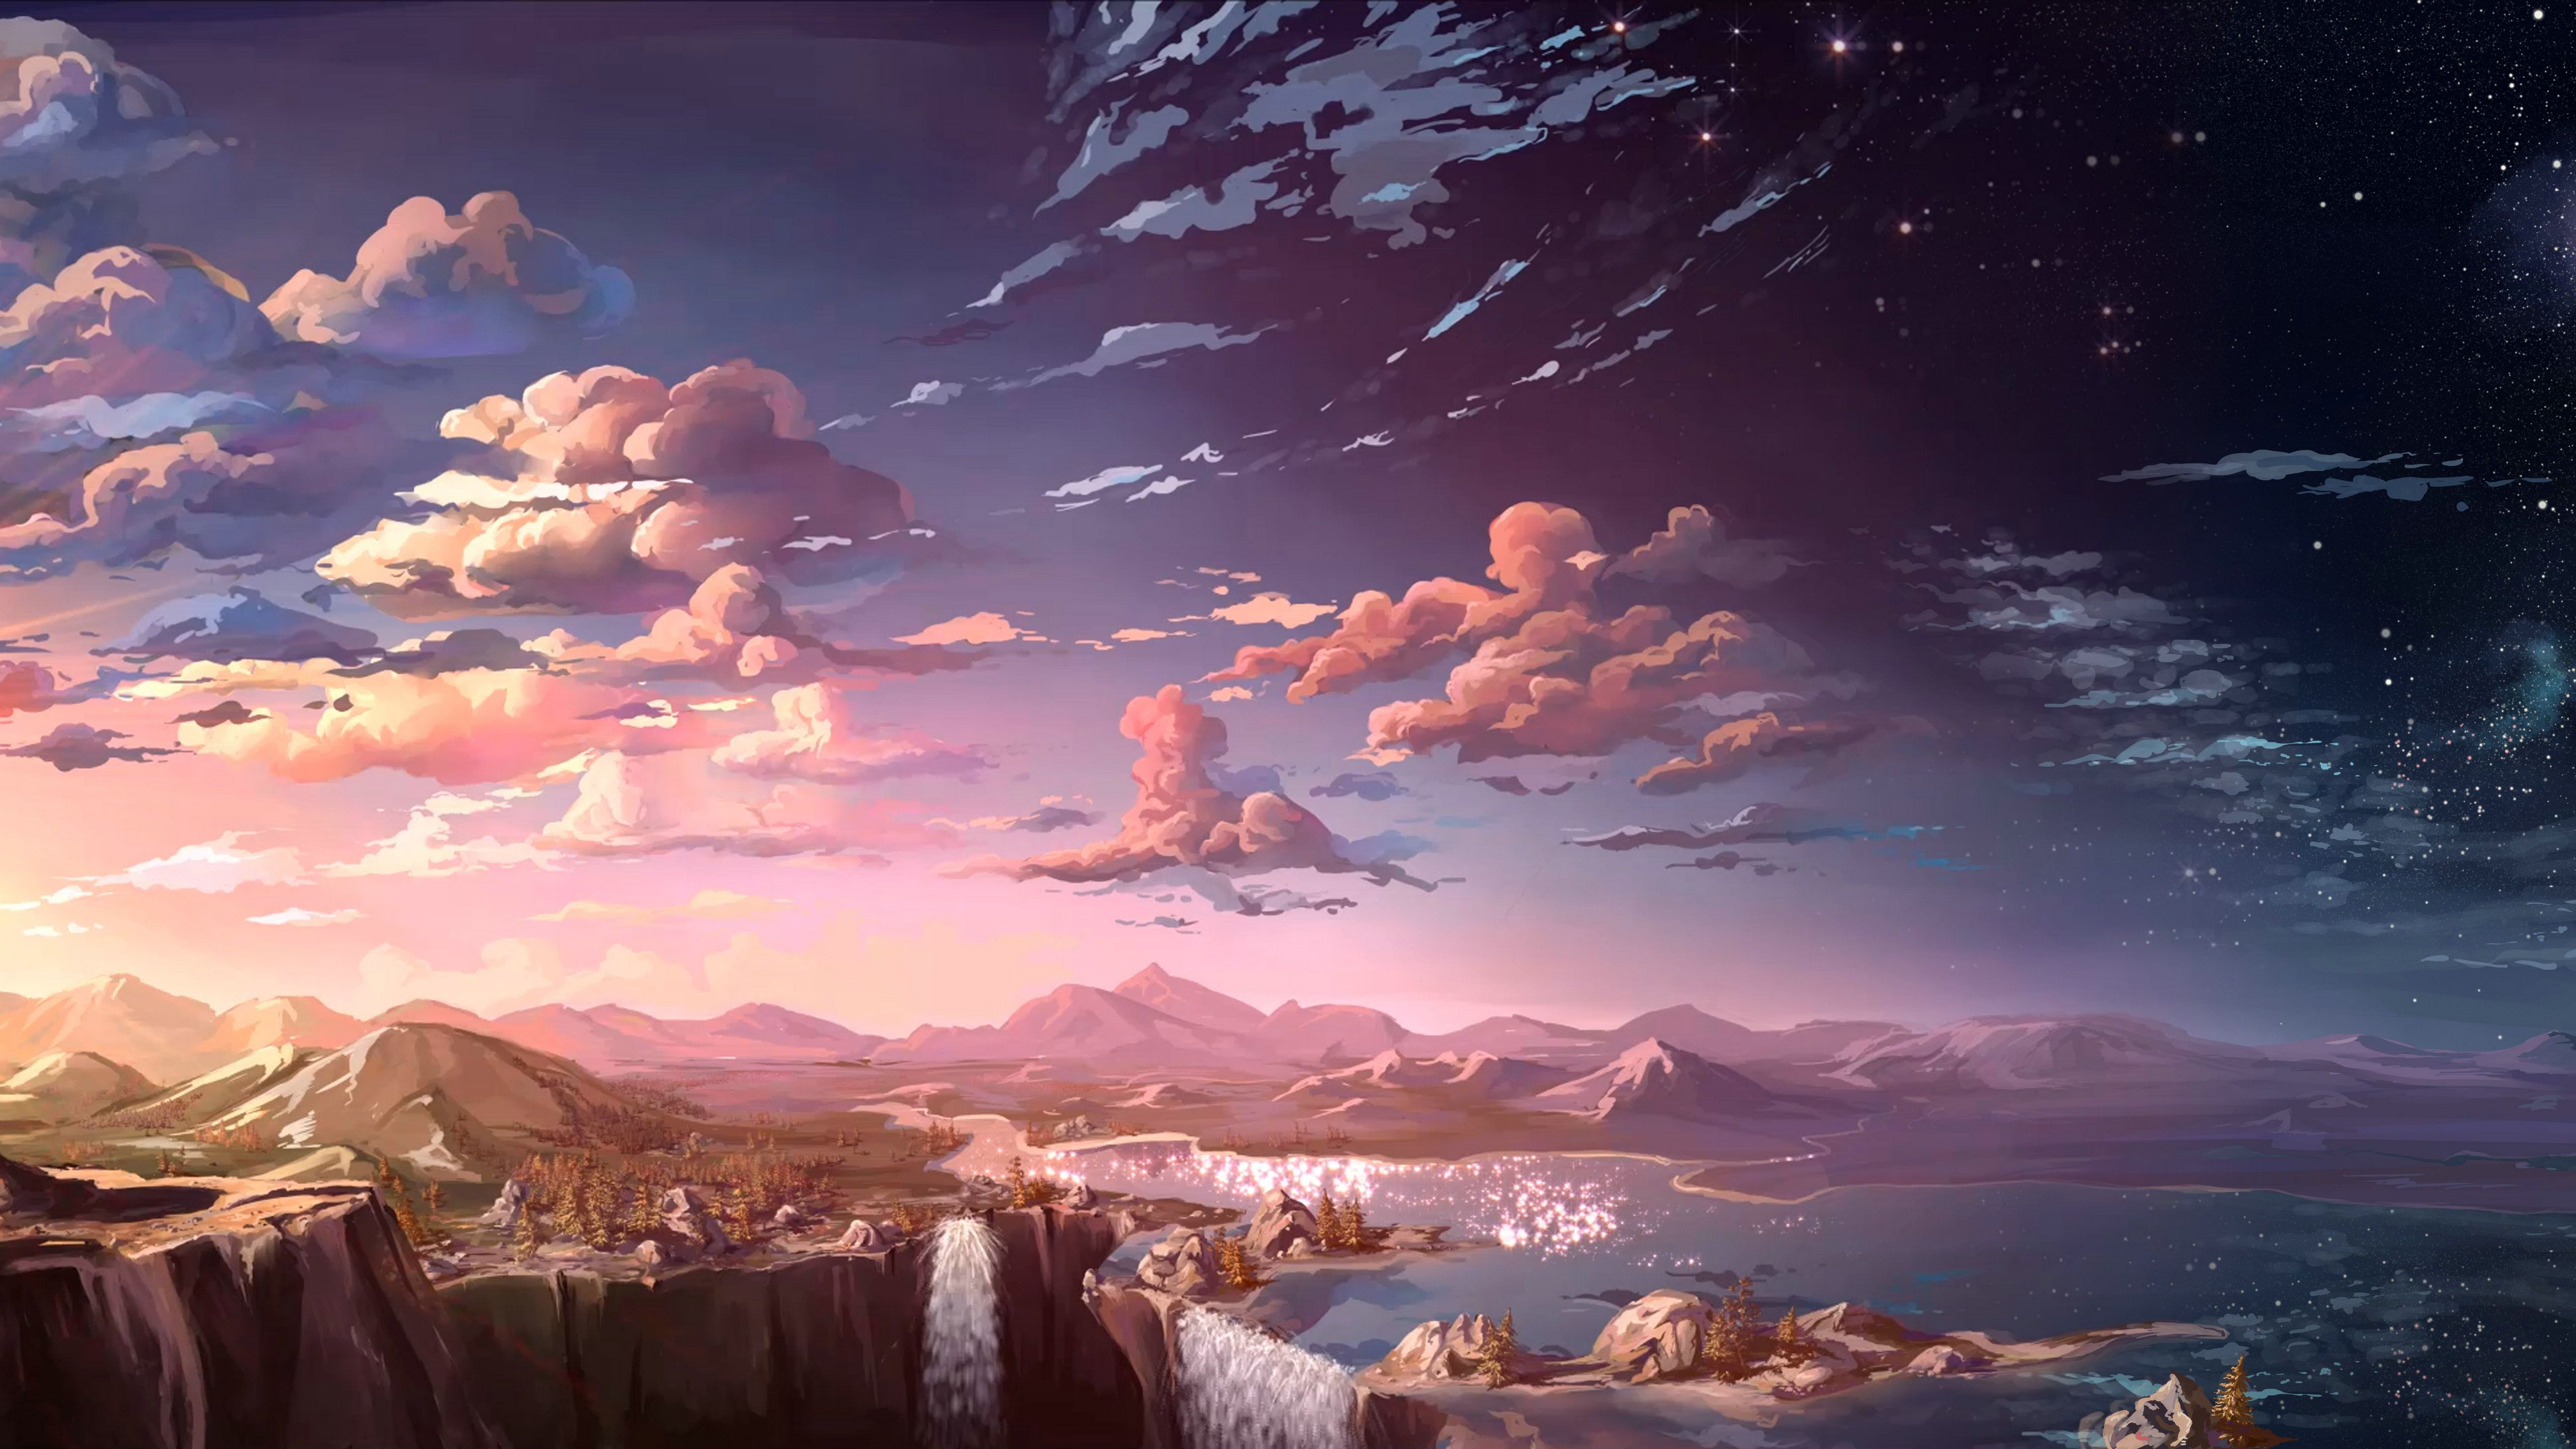 Anime Landscape Wallpapers   Top Anime Landscape Backgrounds 5120x2880